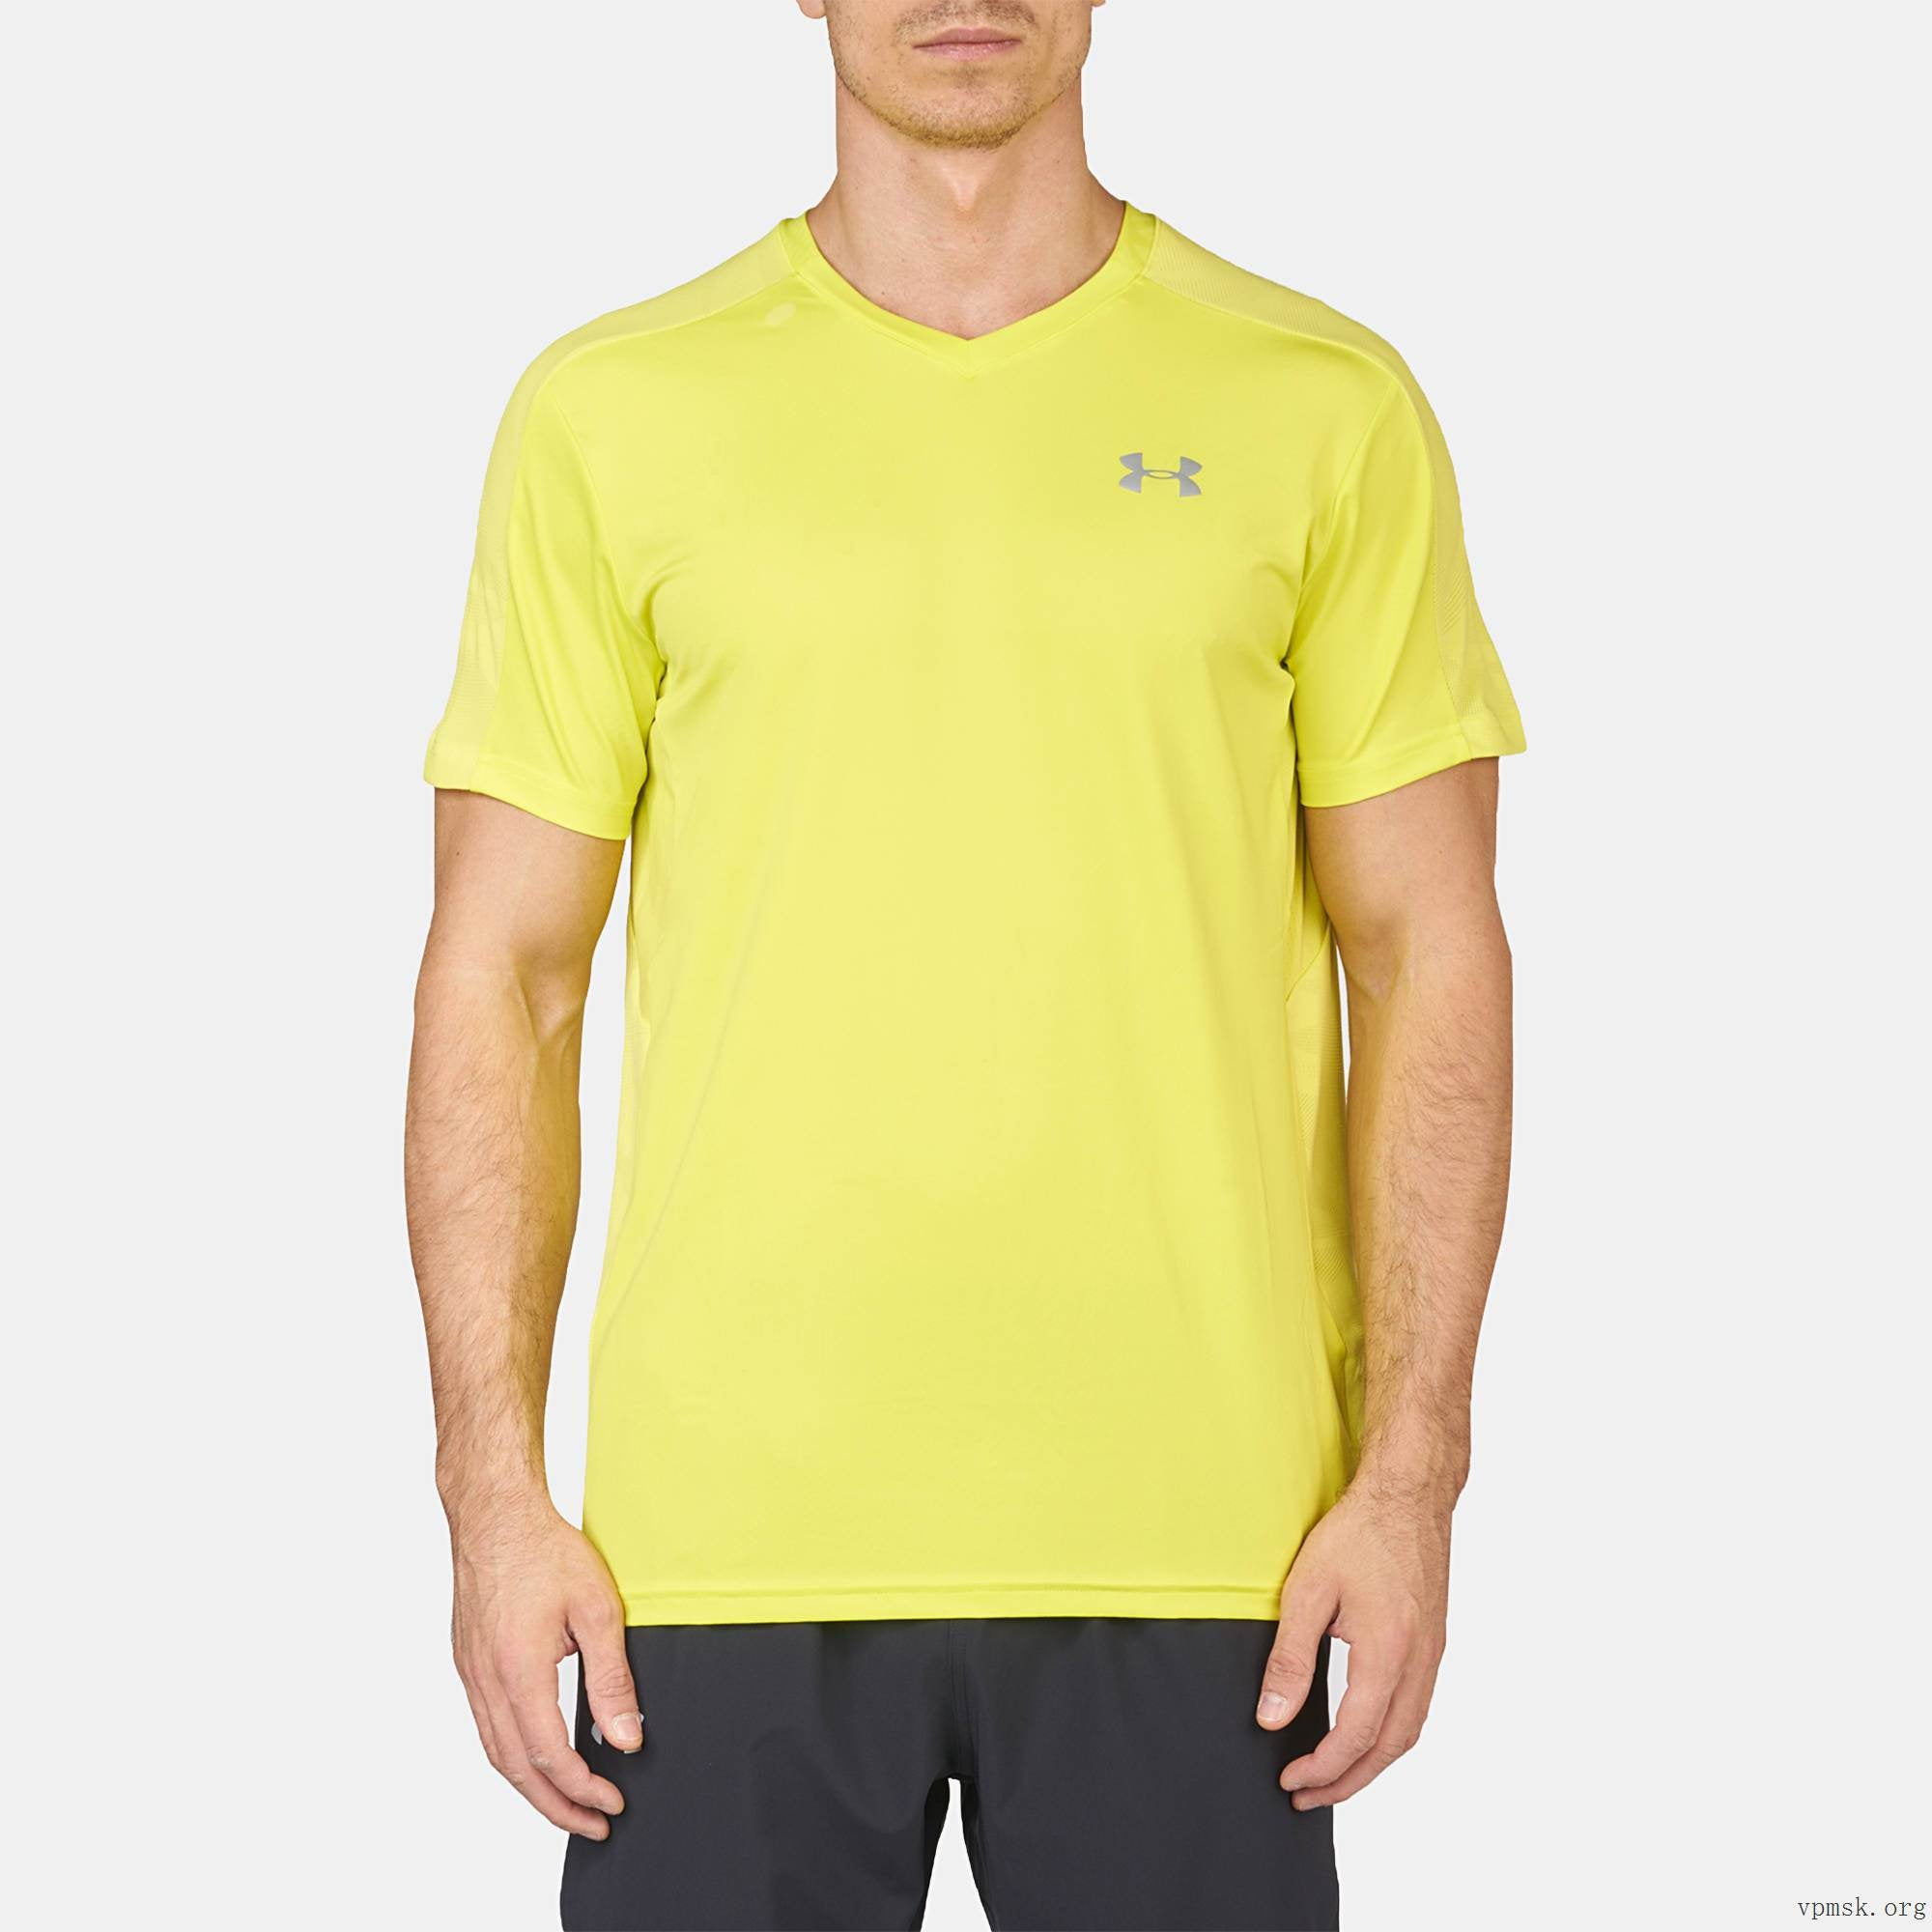 brand new fcd01 4b7e5 Under Armour CoolSwitch Run Short Sleeve Mens Top - Yellow 1284965-738